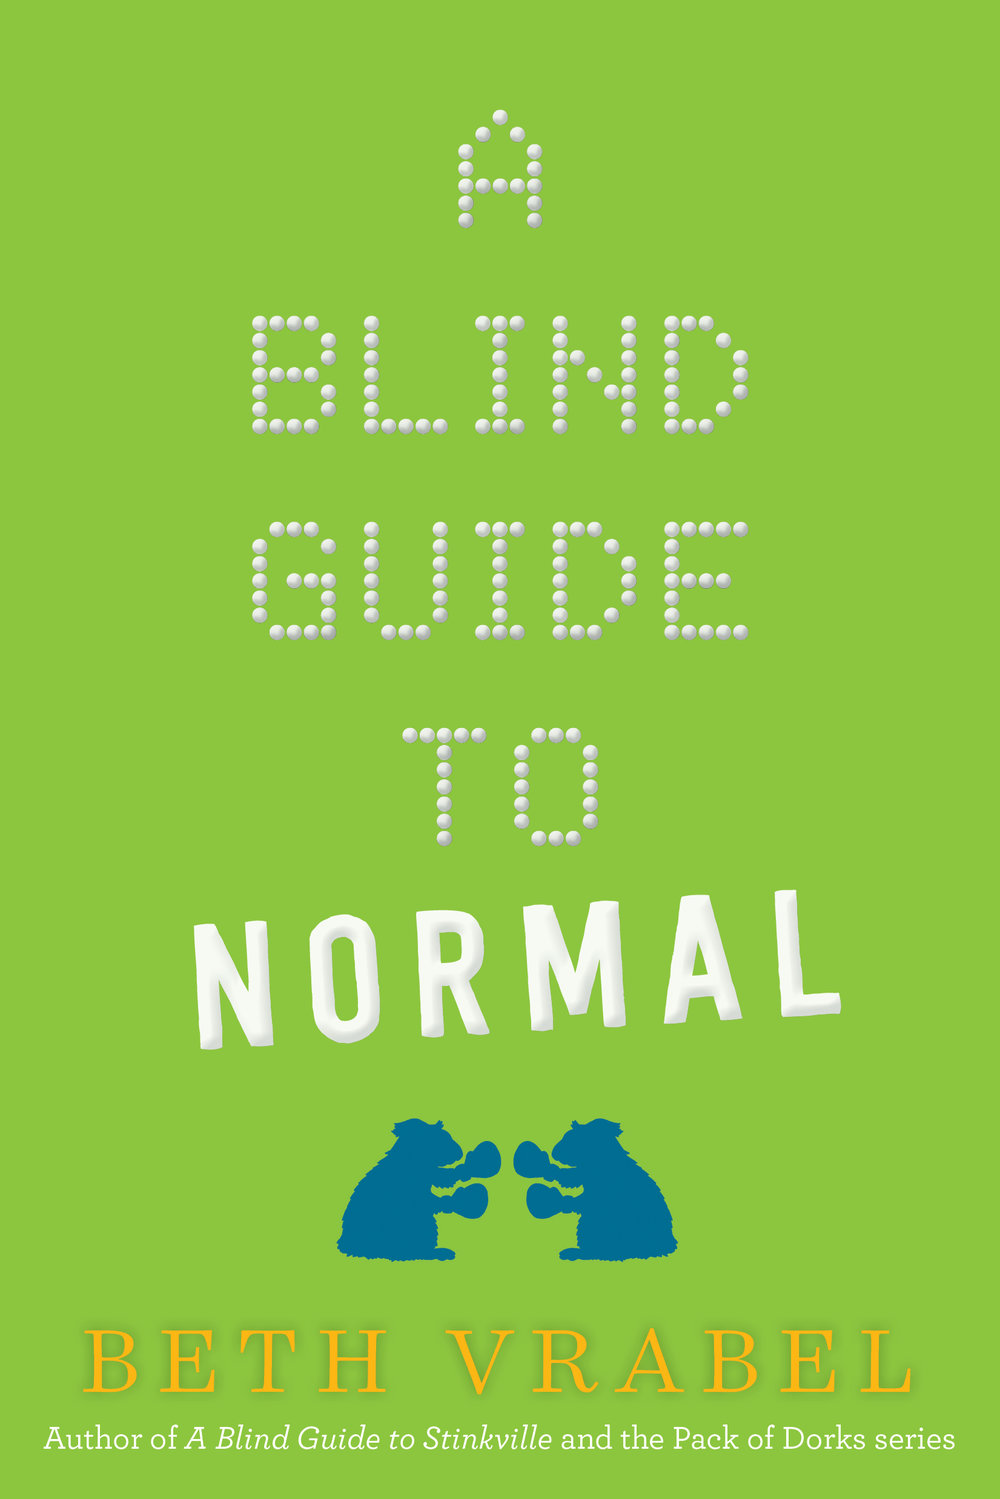 BLIND GUIDE REVISED.jpg